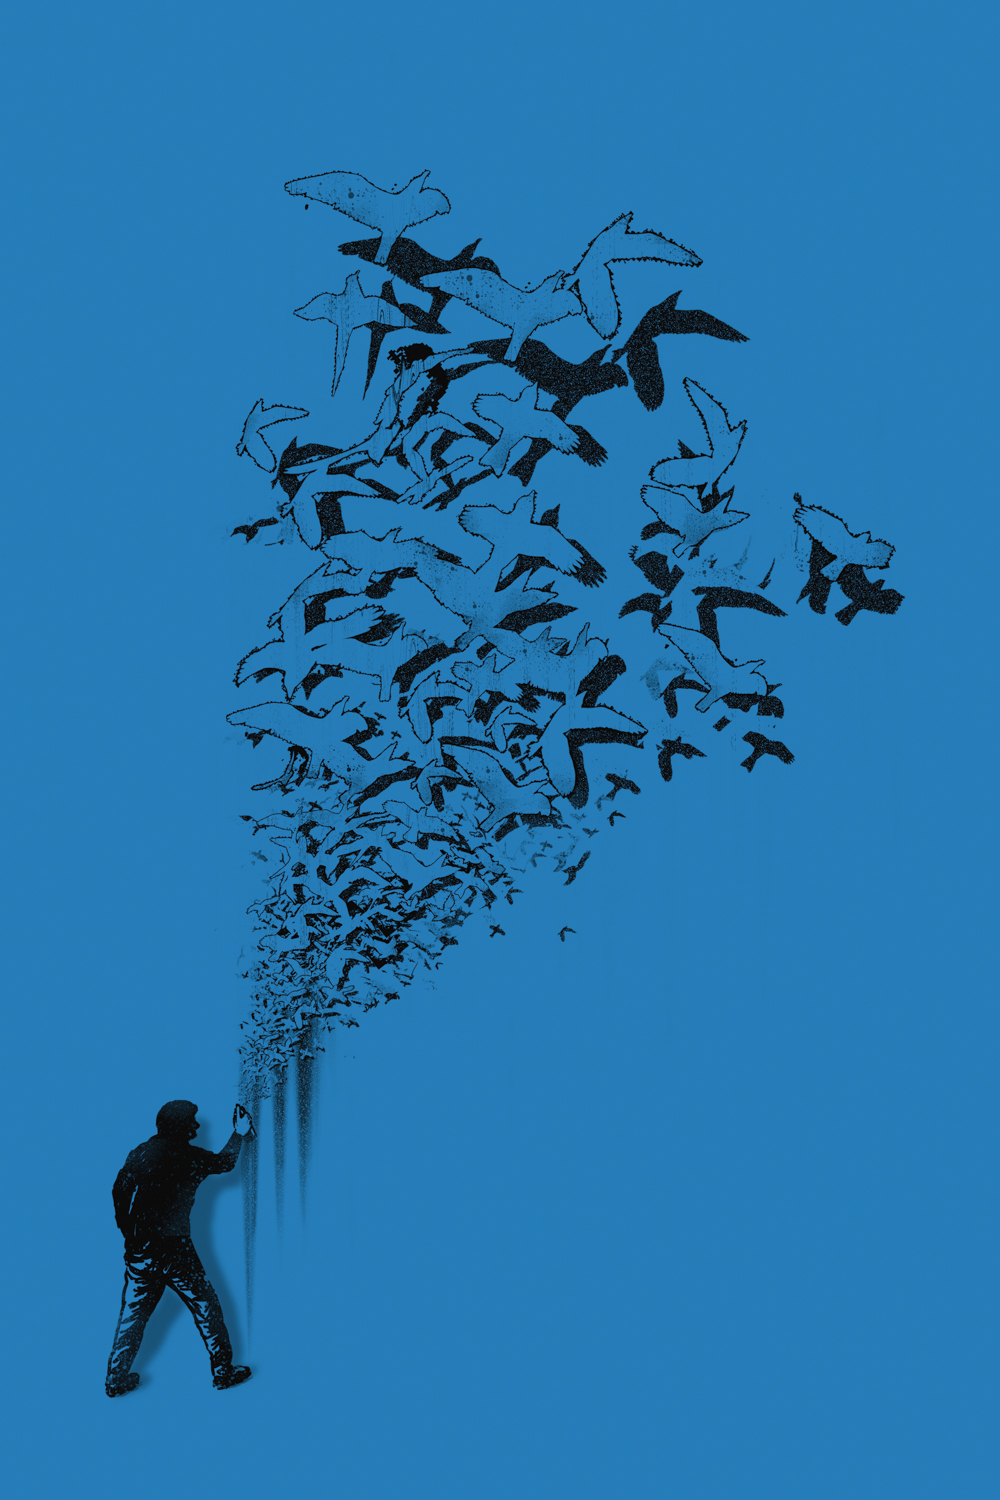 Graphic of man spraying graffiti that turns into a flock of birds on a blue background